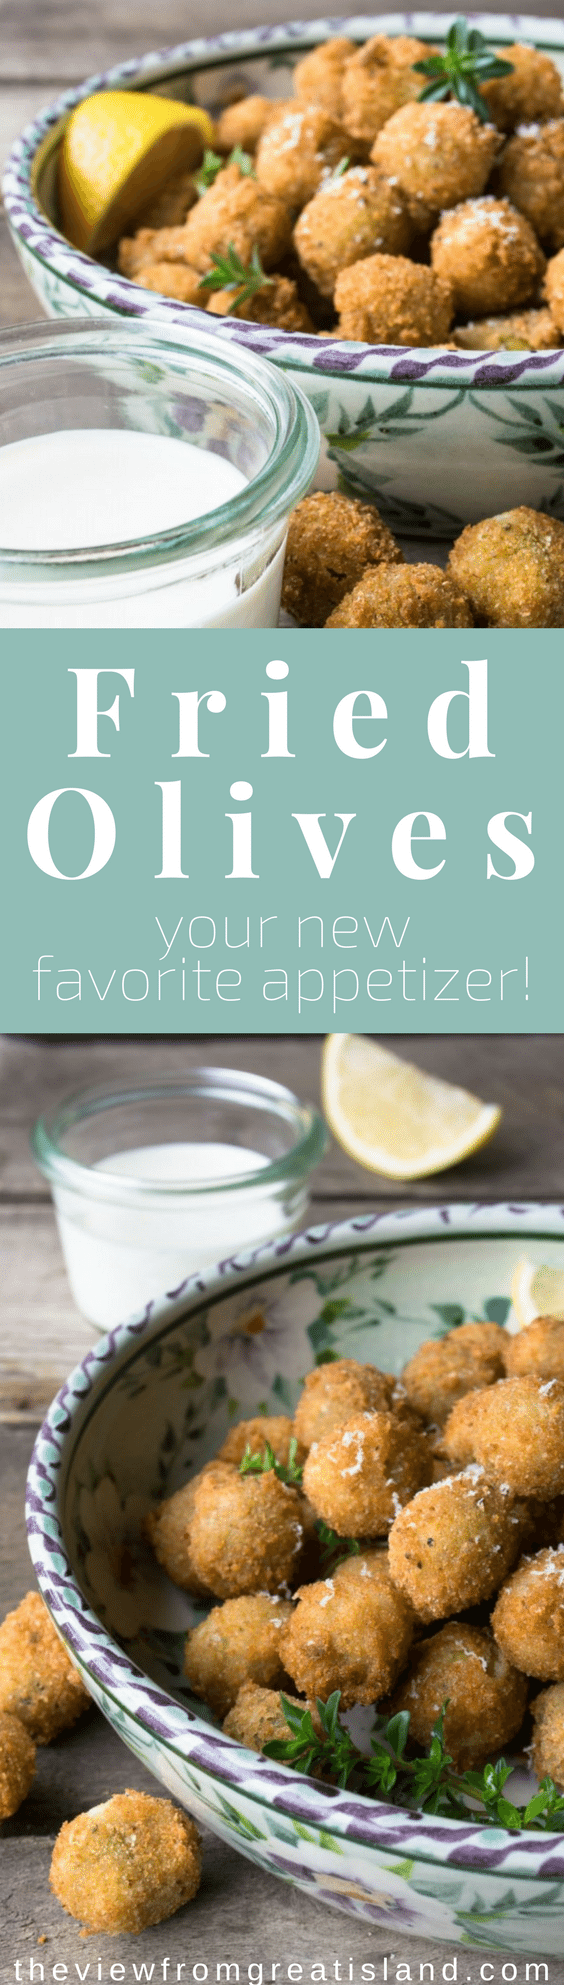 Fried Olives are the best little appetizers in the world ~ they're crisp on the outside, warm and juicy on the inside ~ dip them in a little garlicky aioli and you'll be in heaven, guaranteed! #appetizer #olives #fingerfood #superbowl #gameday #holidayappetizer #partyfood #cocktailparty